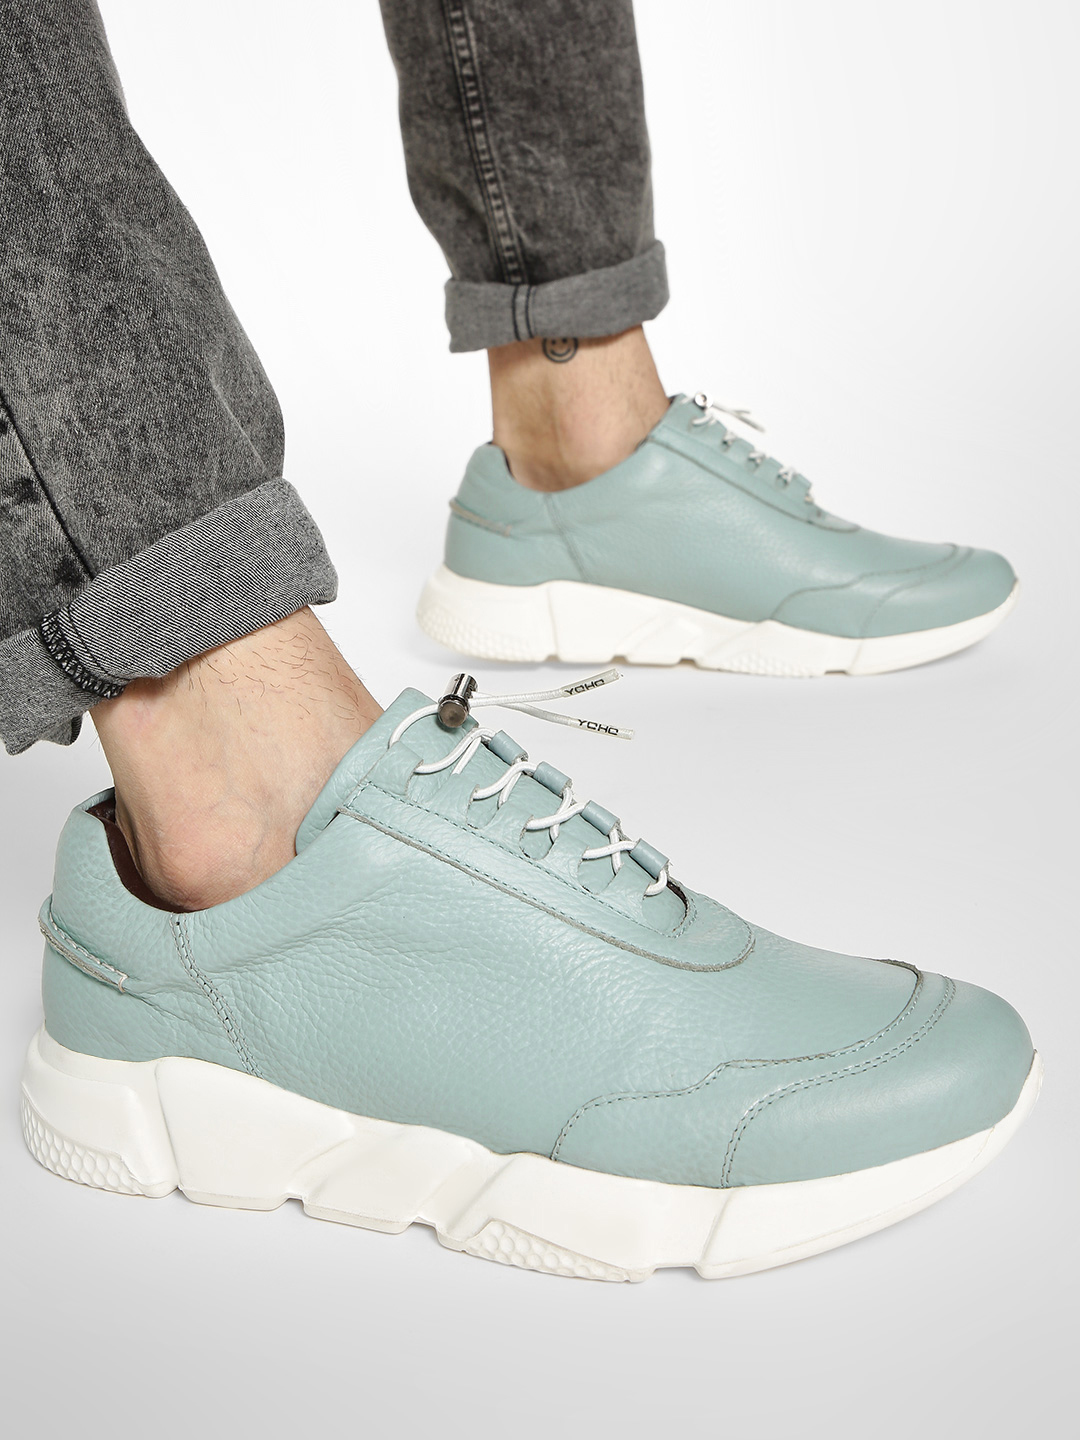 YOHO Blue Textured Cord Feed Leather Sneakers 1